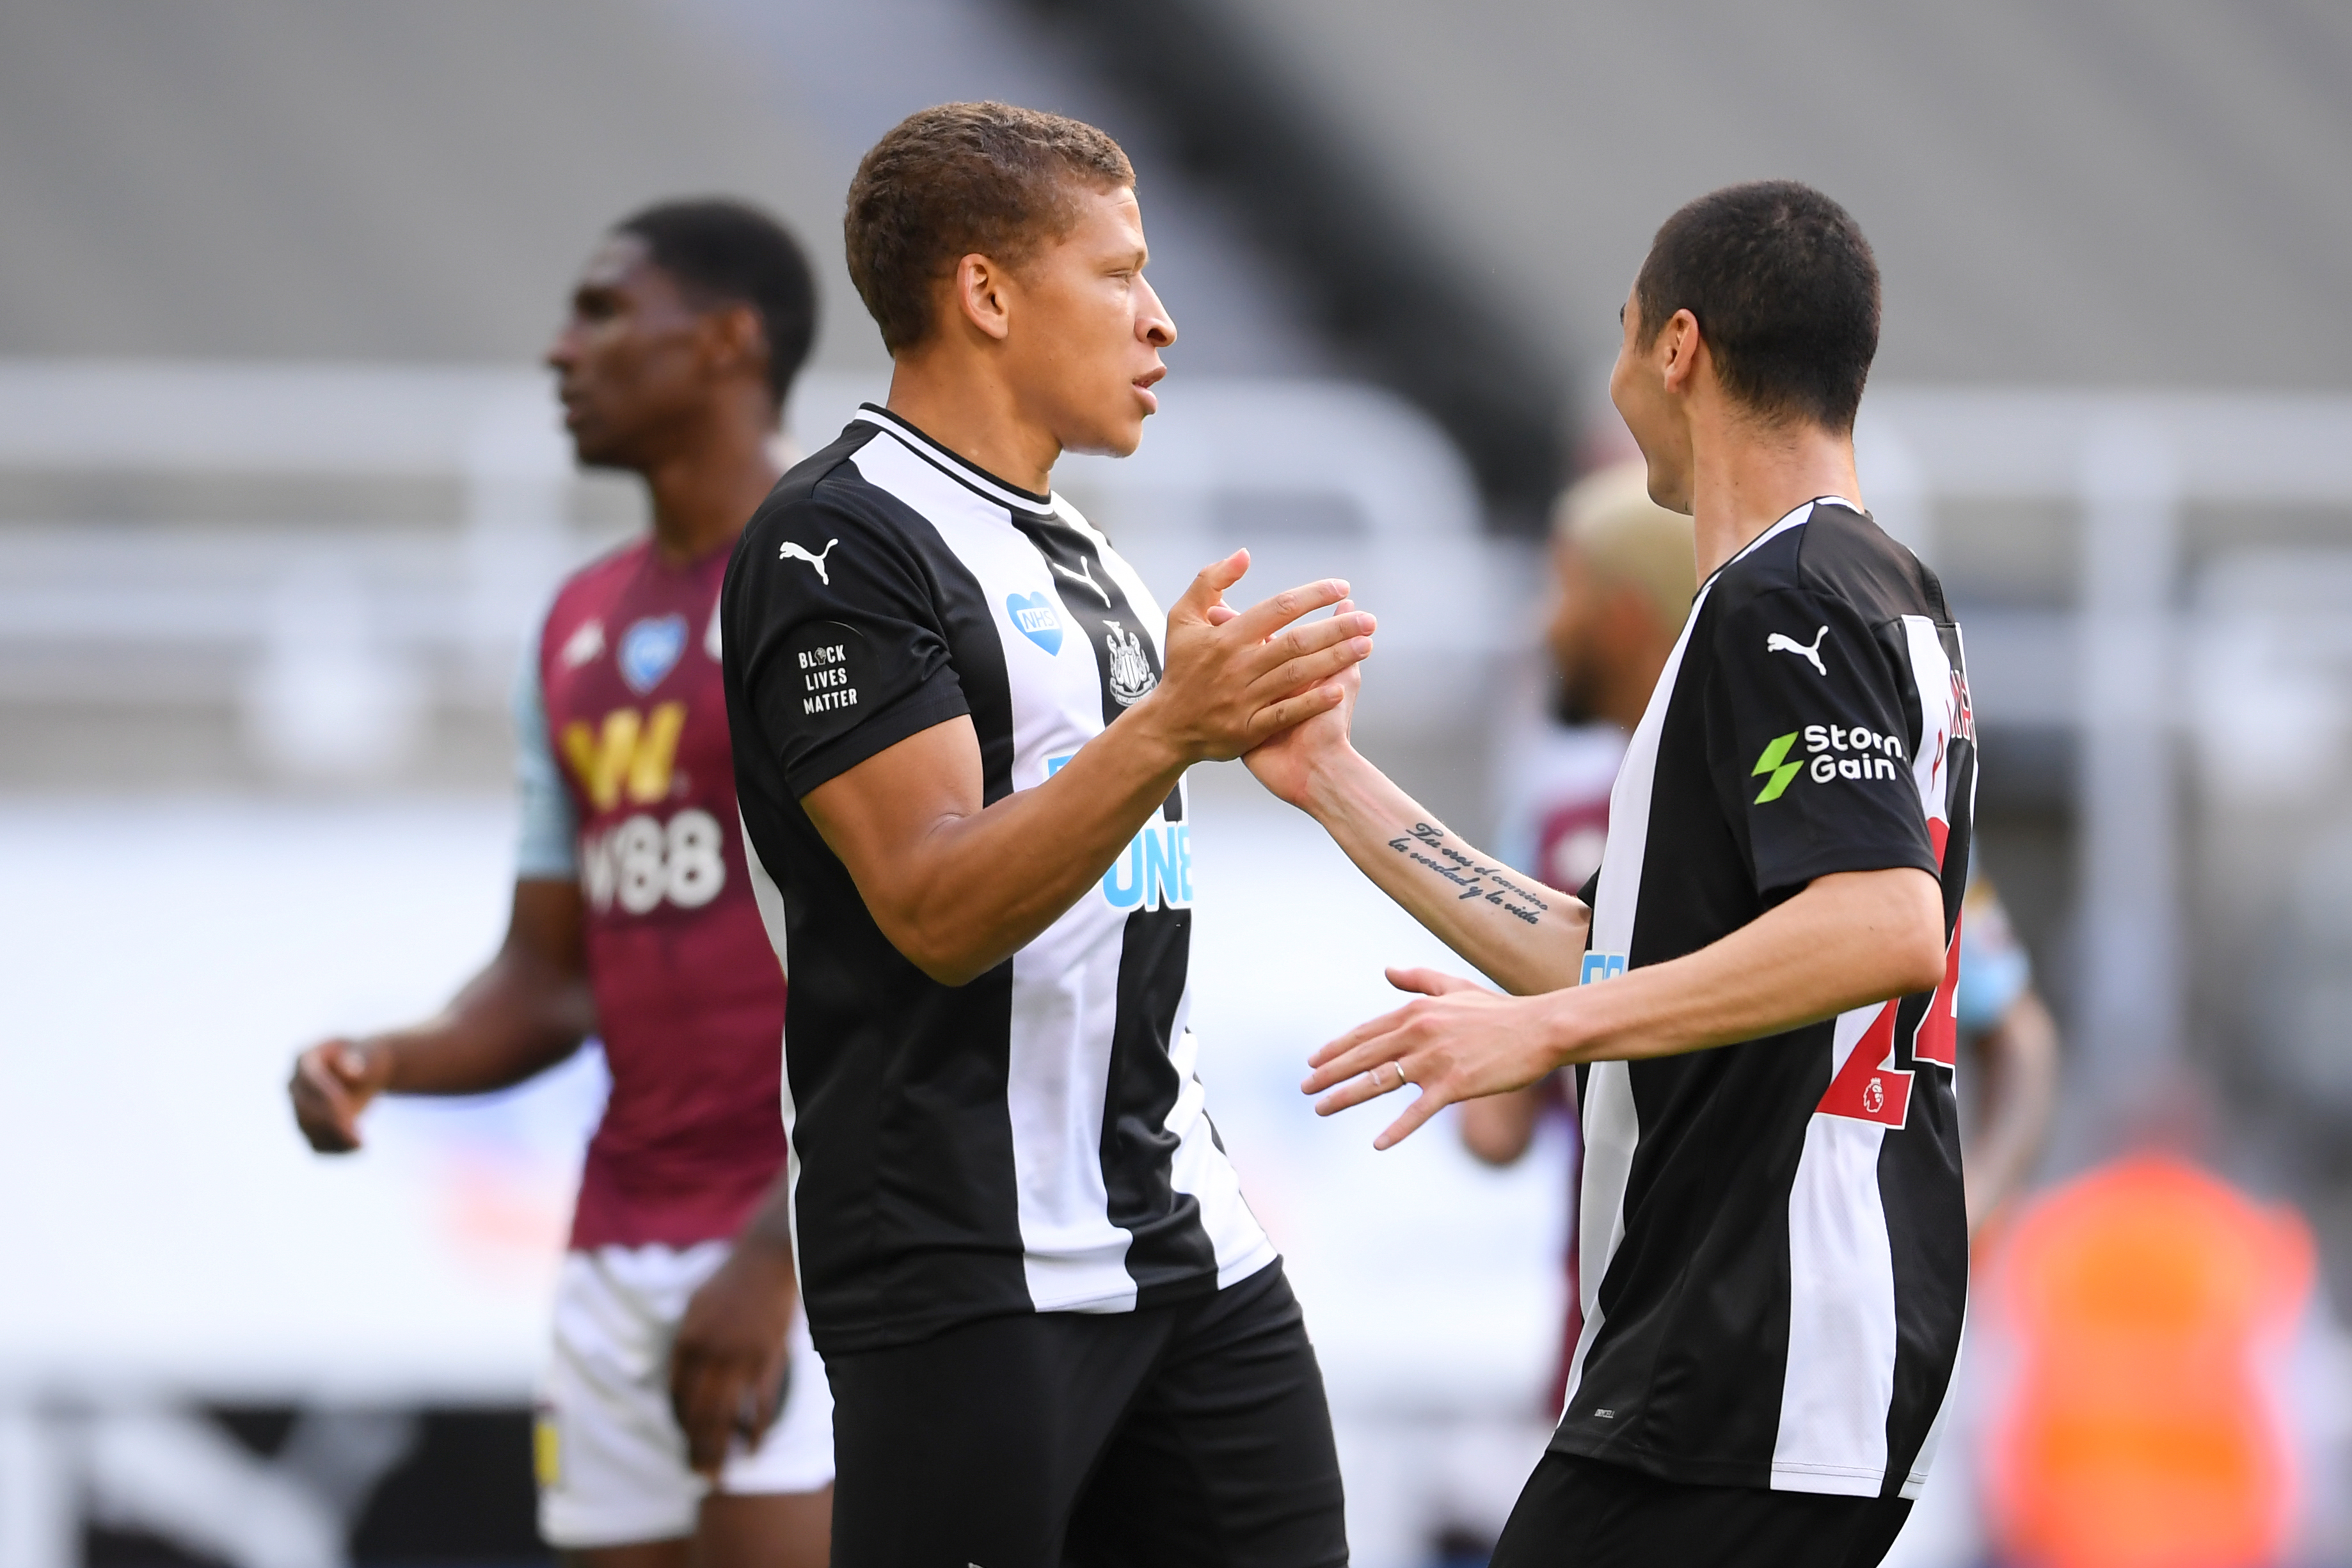 Newcastle United's Dwight Gayle is on Fulham's radar this month (Gayle is in action in the photo)